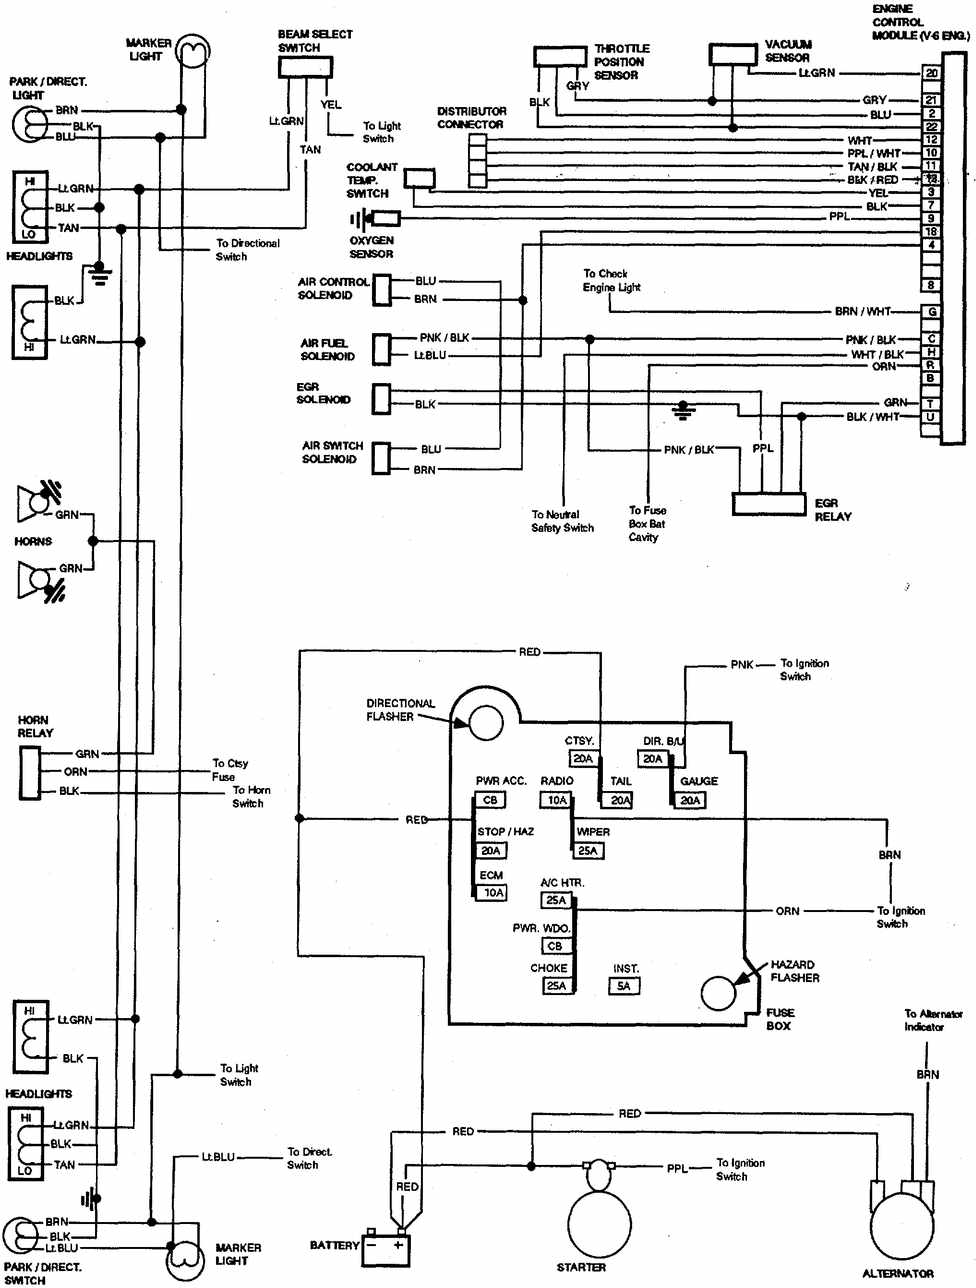 small resolution of 1978 chevy turn signal wiring diagram detailed schematics diagram rh antonartgallery com 1975 chevy caprice wiring